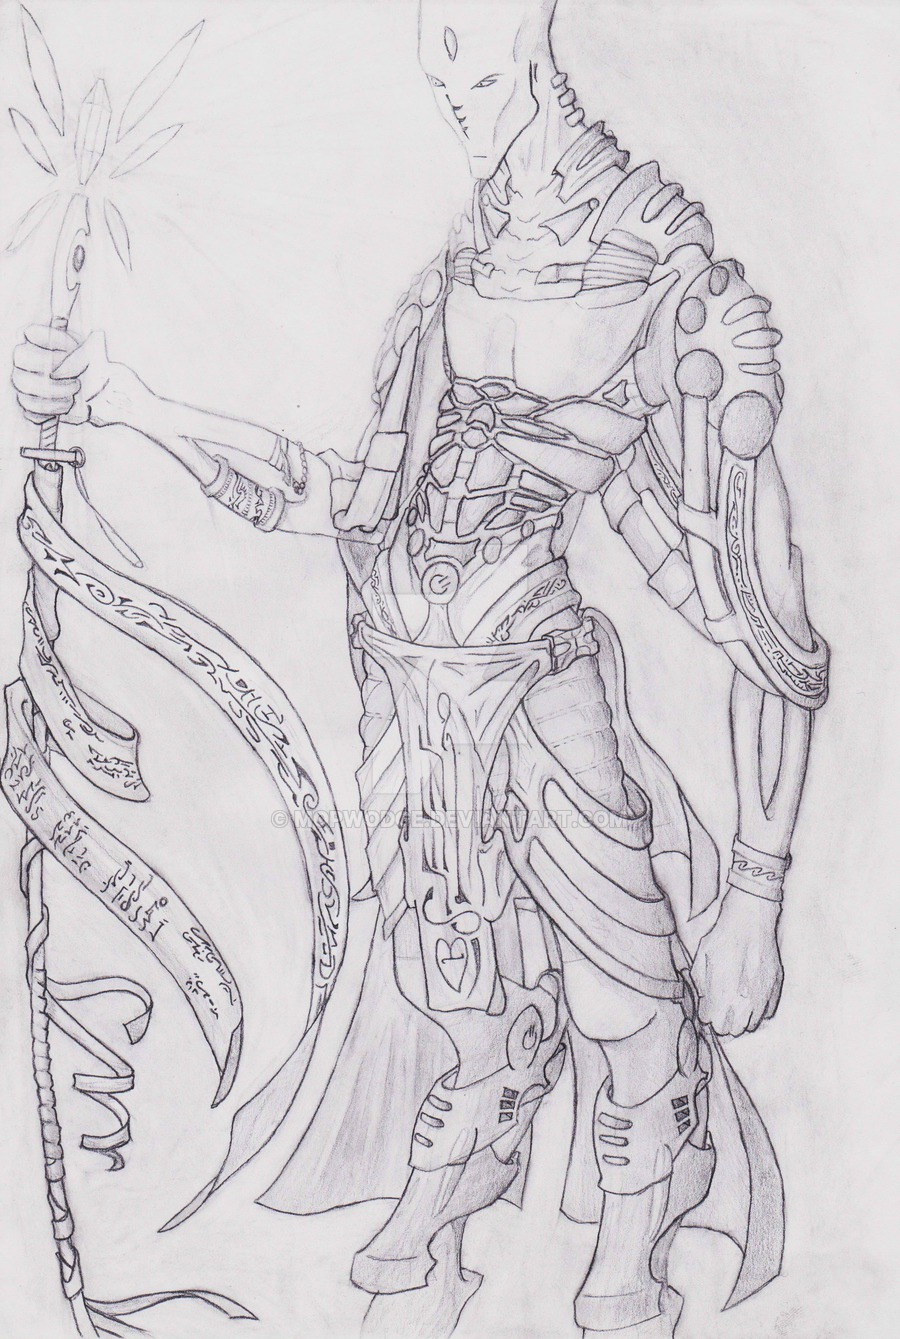 Drawn warrior shaman Warrior by on Shaman DeviantArt